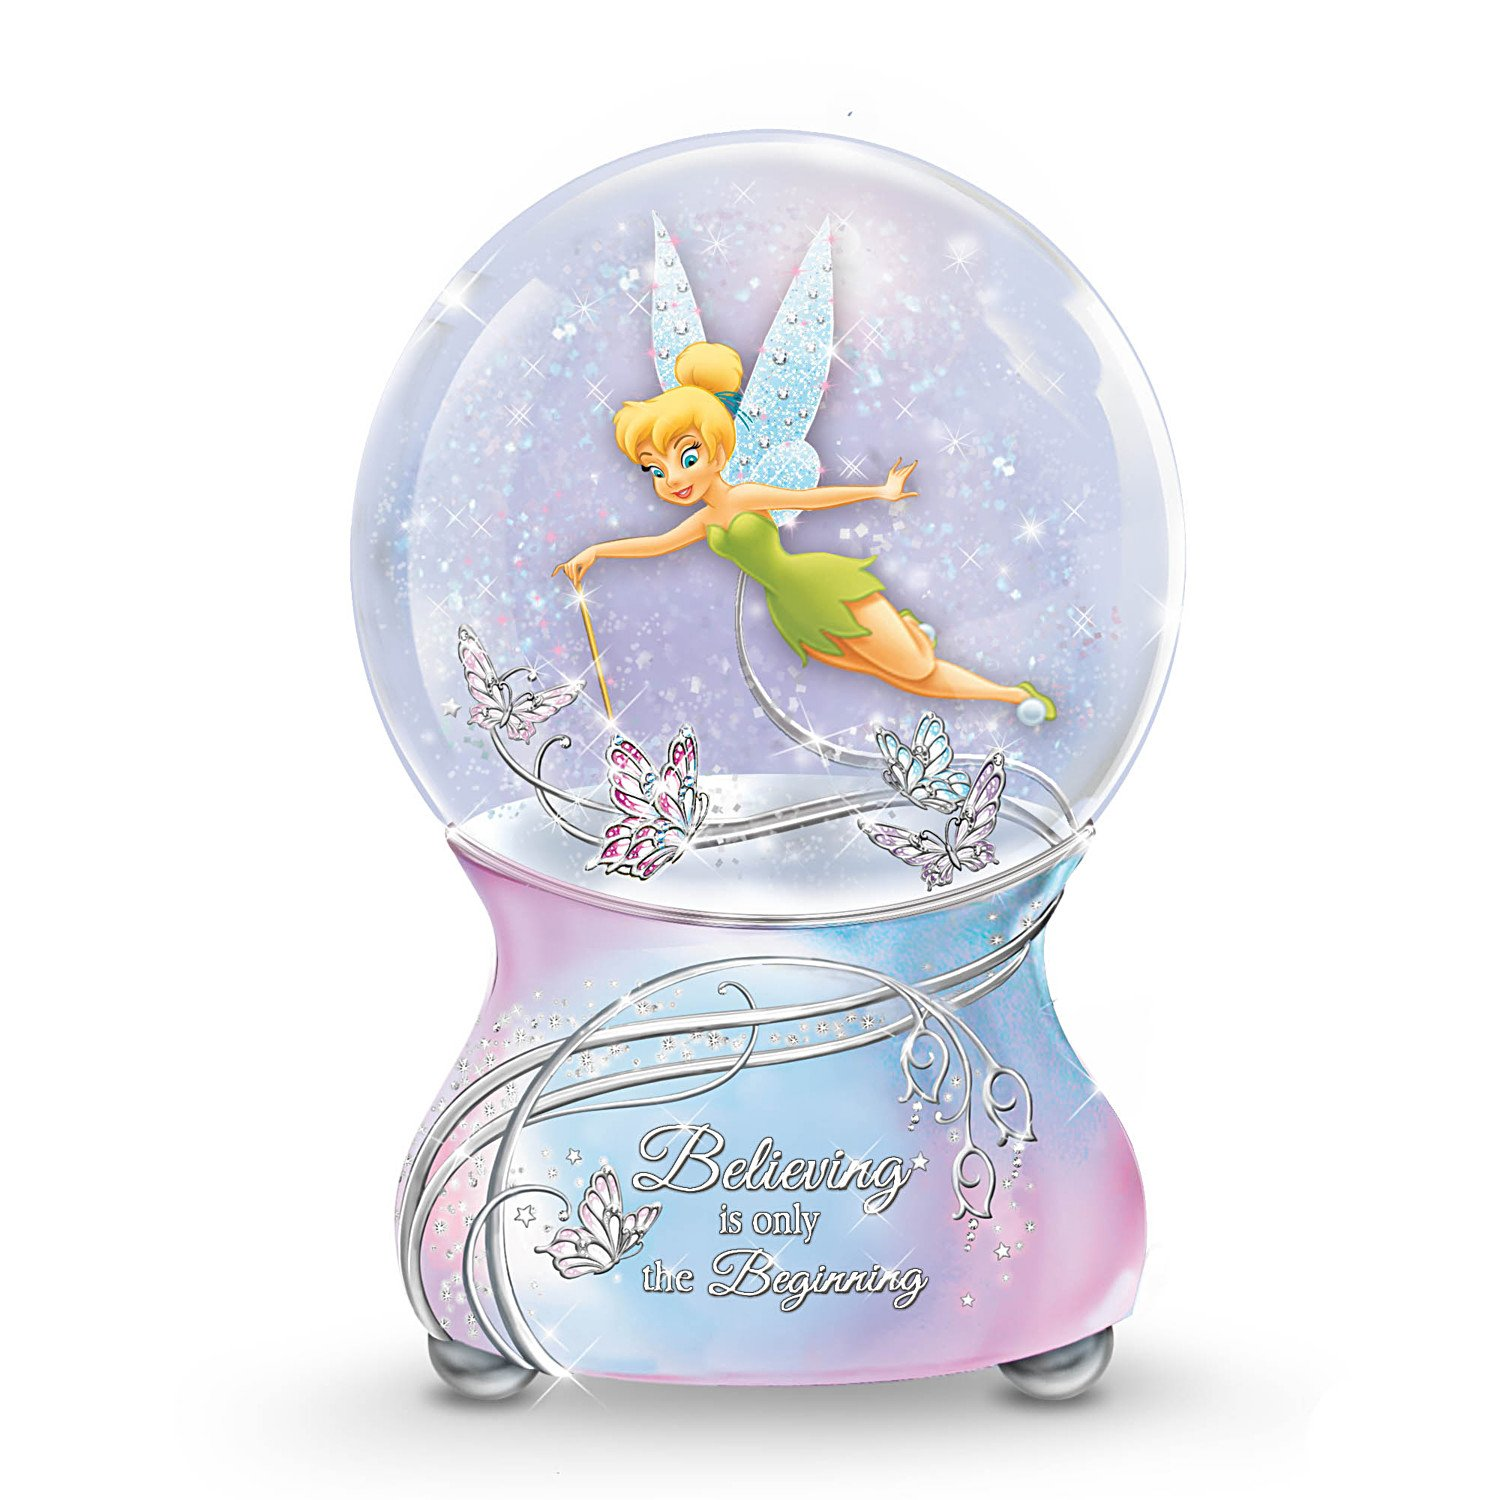 Disney Tinker Bell Musical Glitter Globe with Sentiment by The Bradford Exchange 01-25197-001